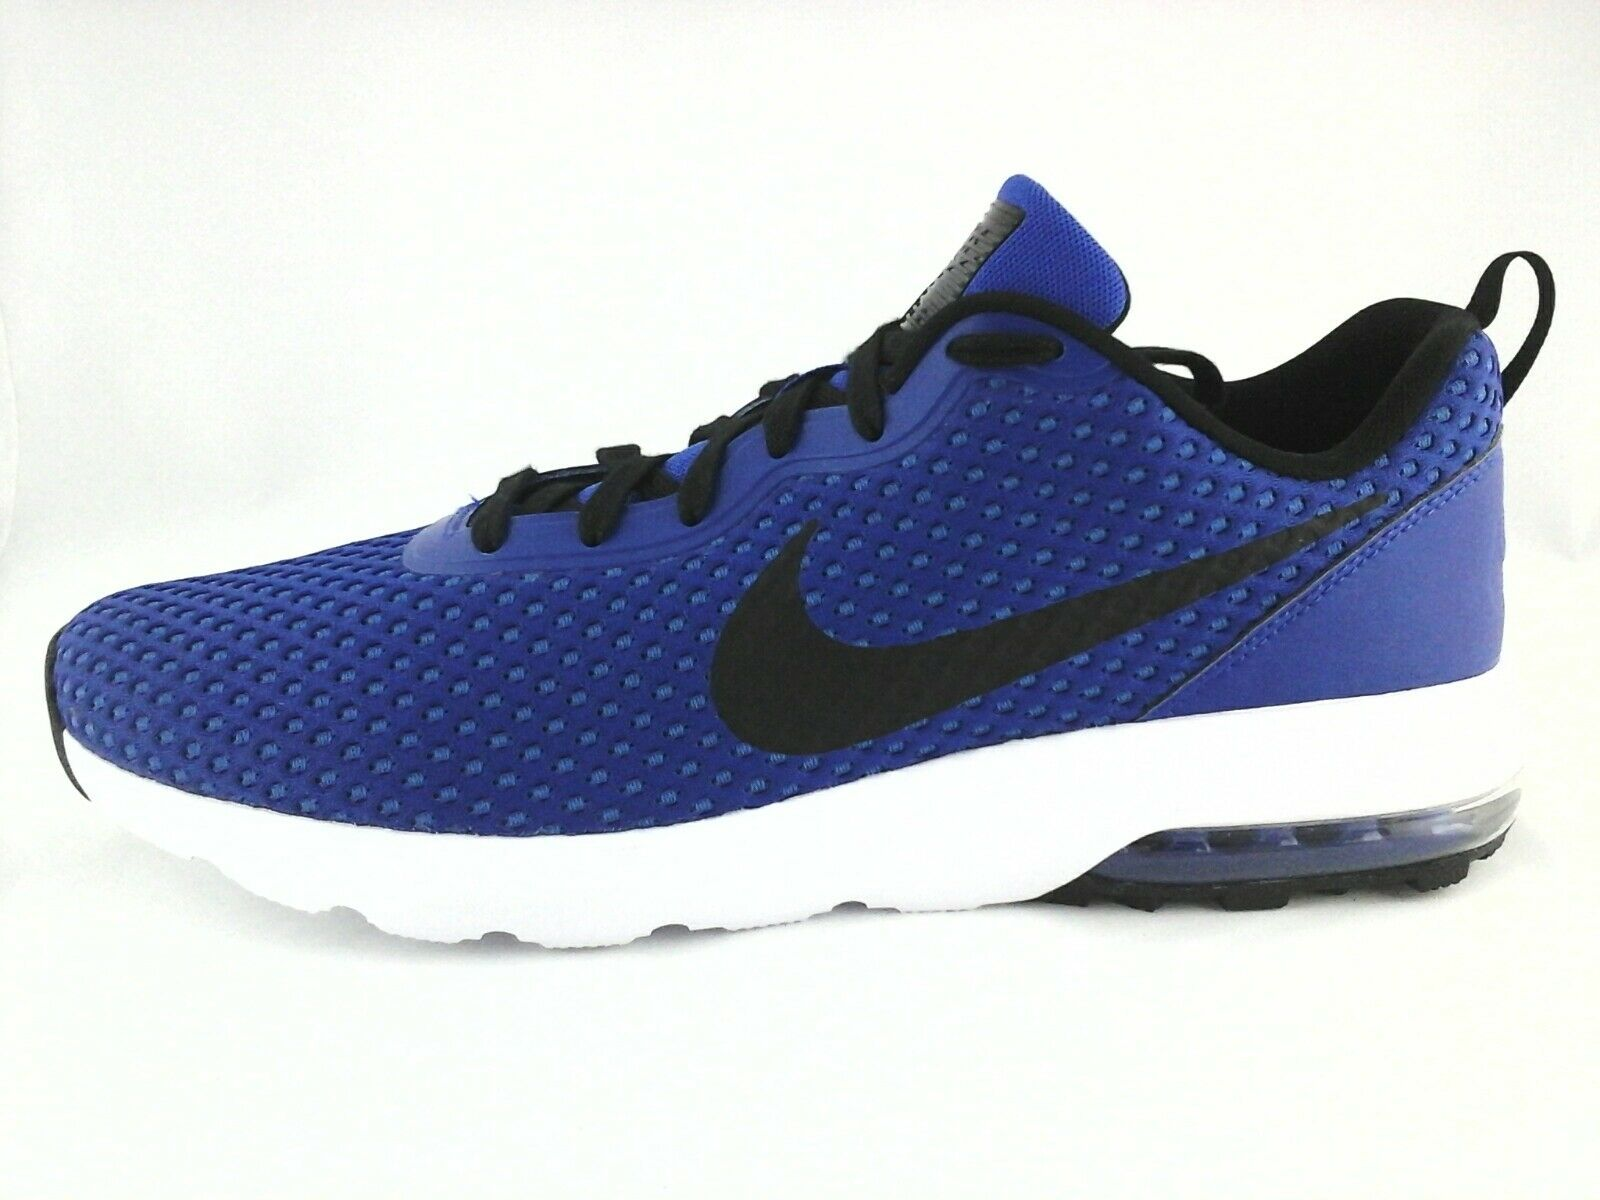 NIKE AIR MAX TURBULENCE Sneakers Running shoes blueee Black Men's US 13 47.5  150